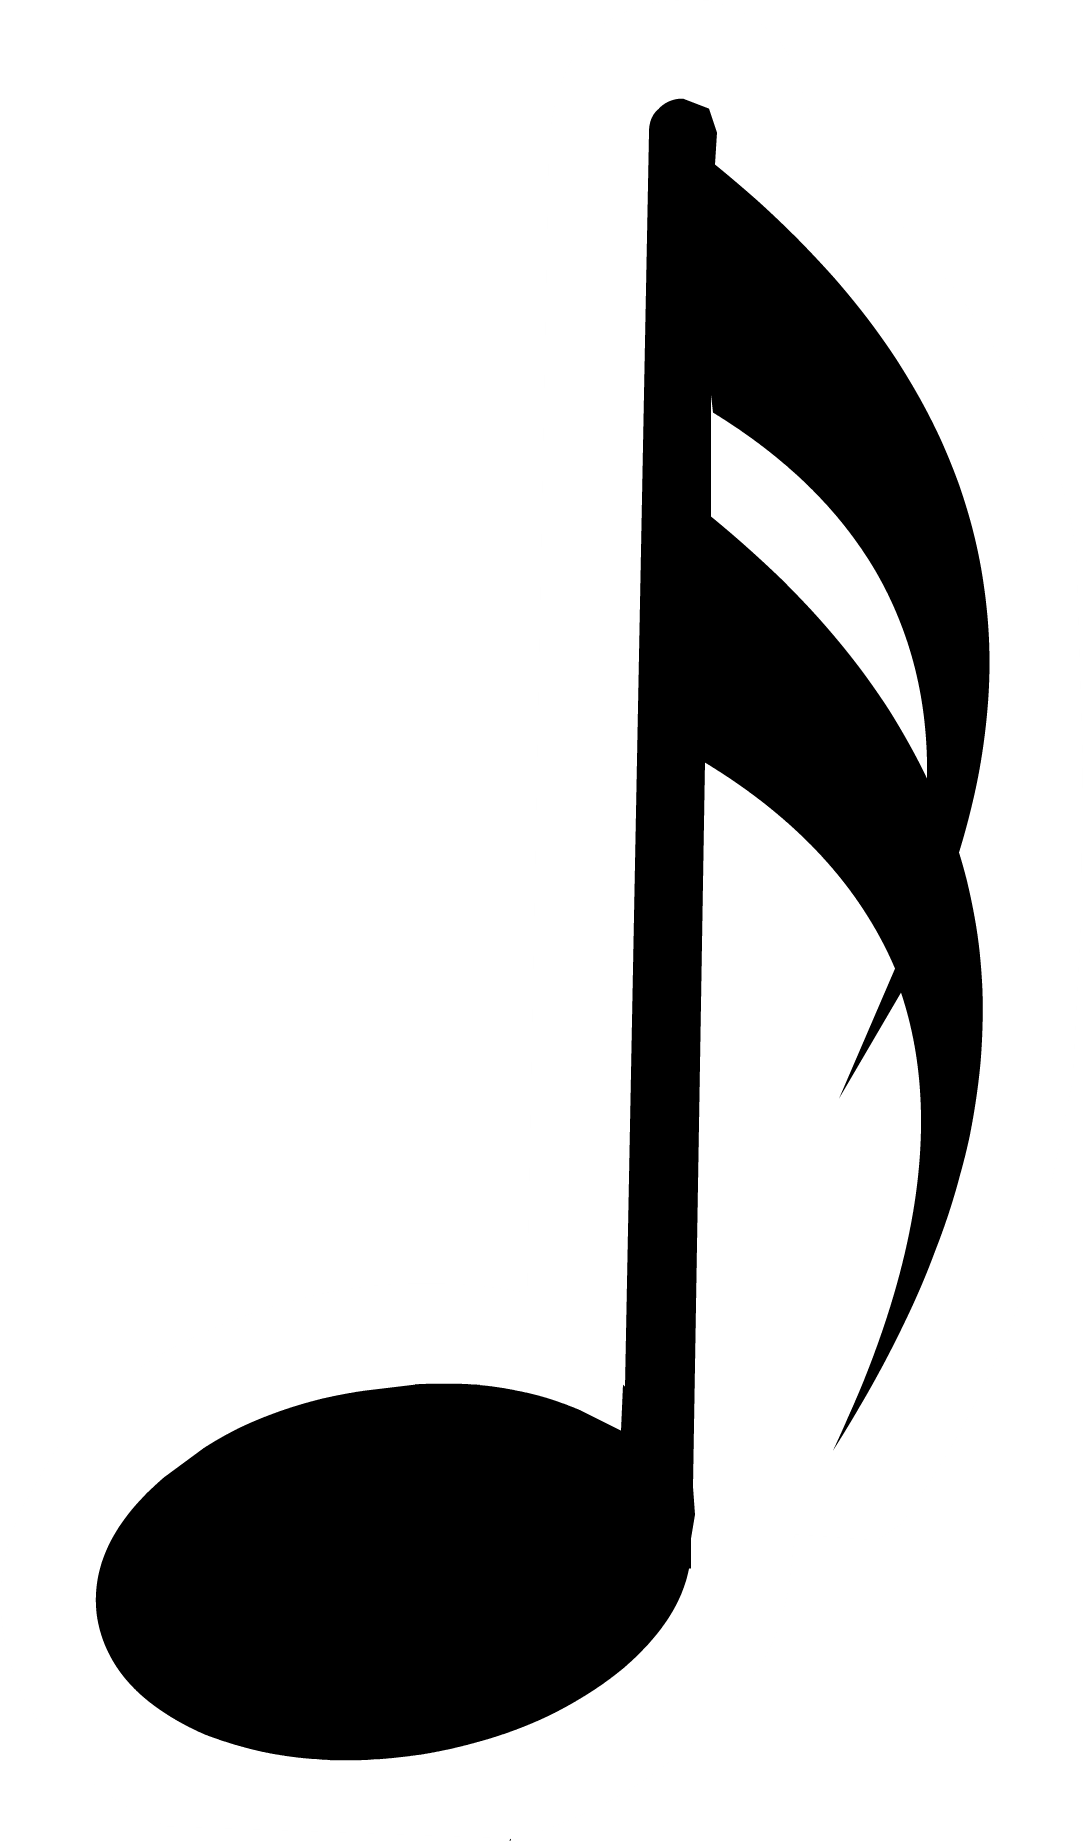 Black music note png. Image pin club penguin